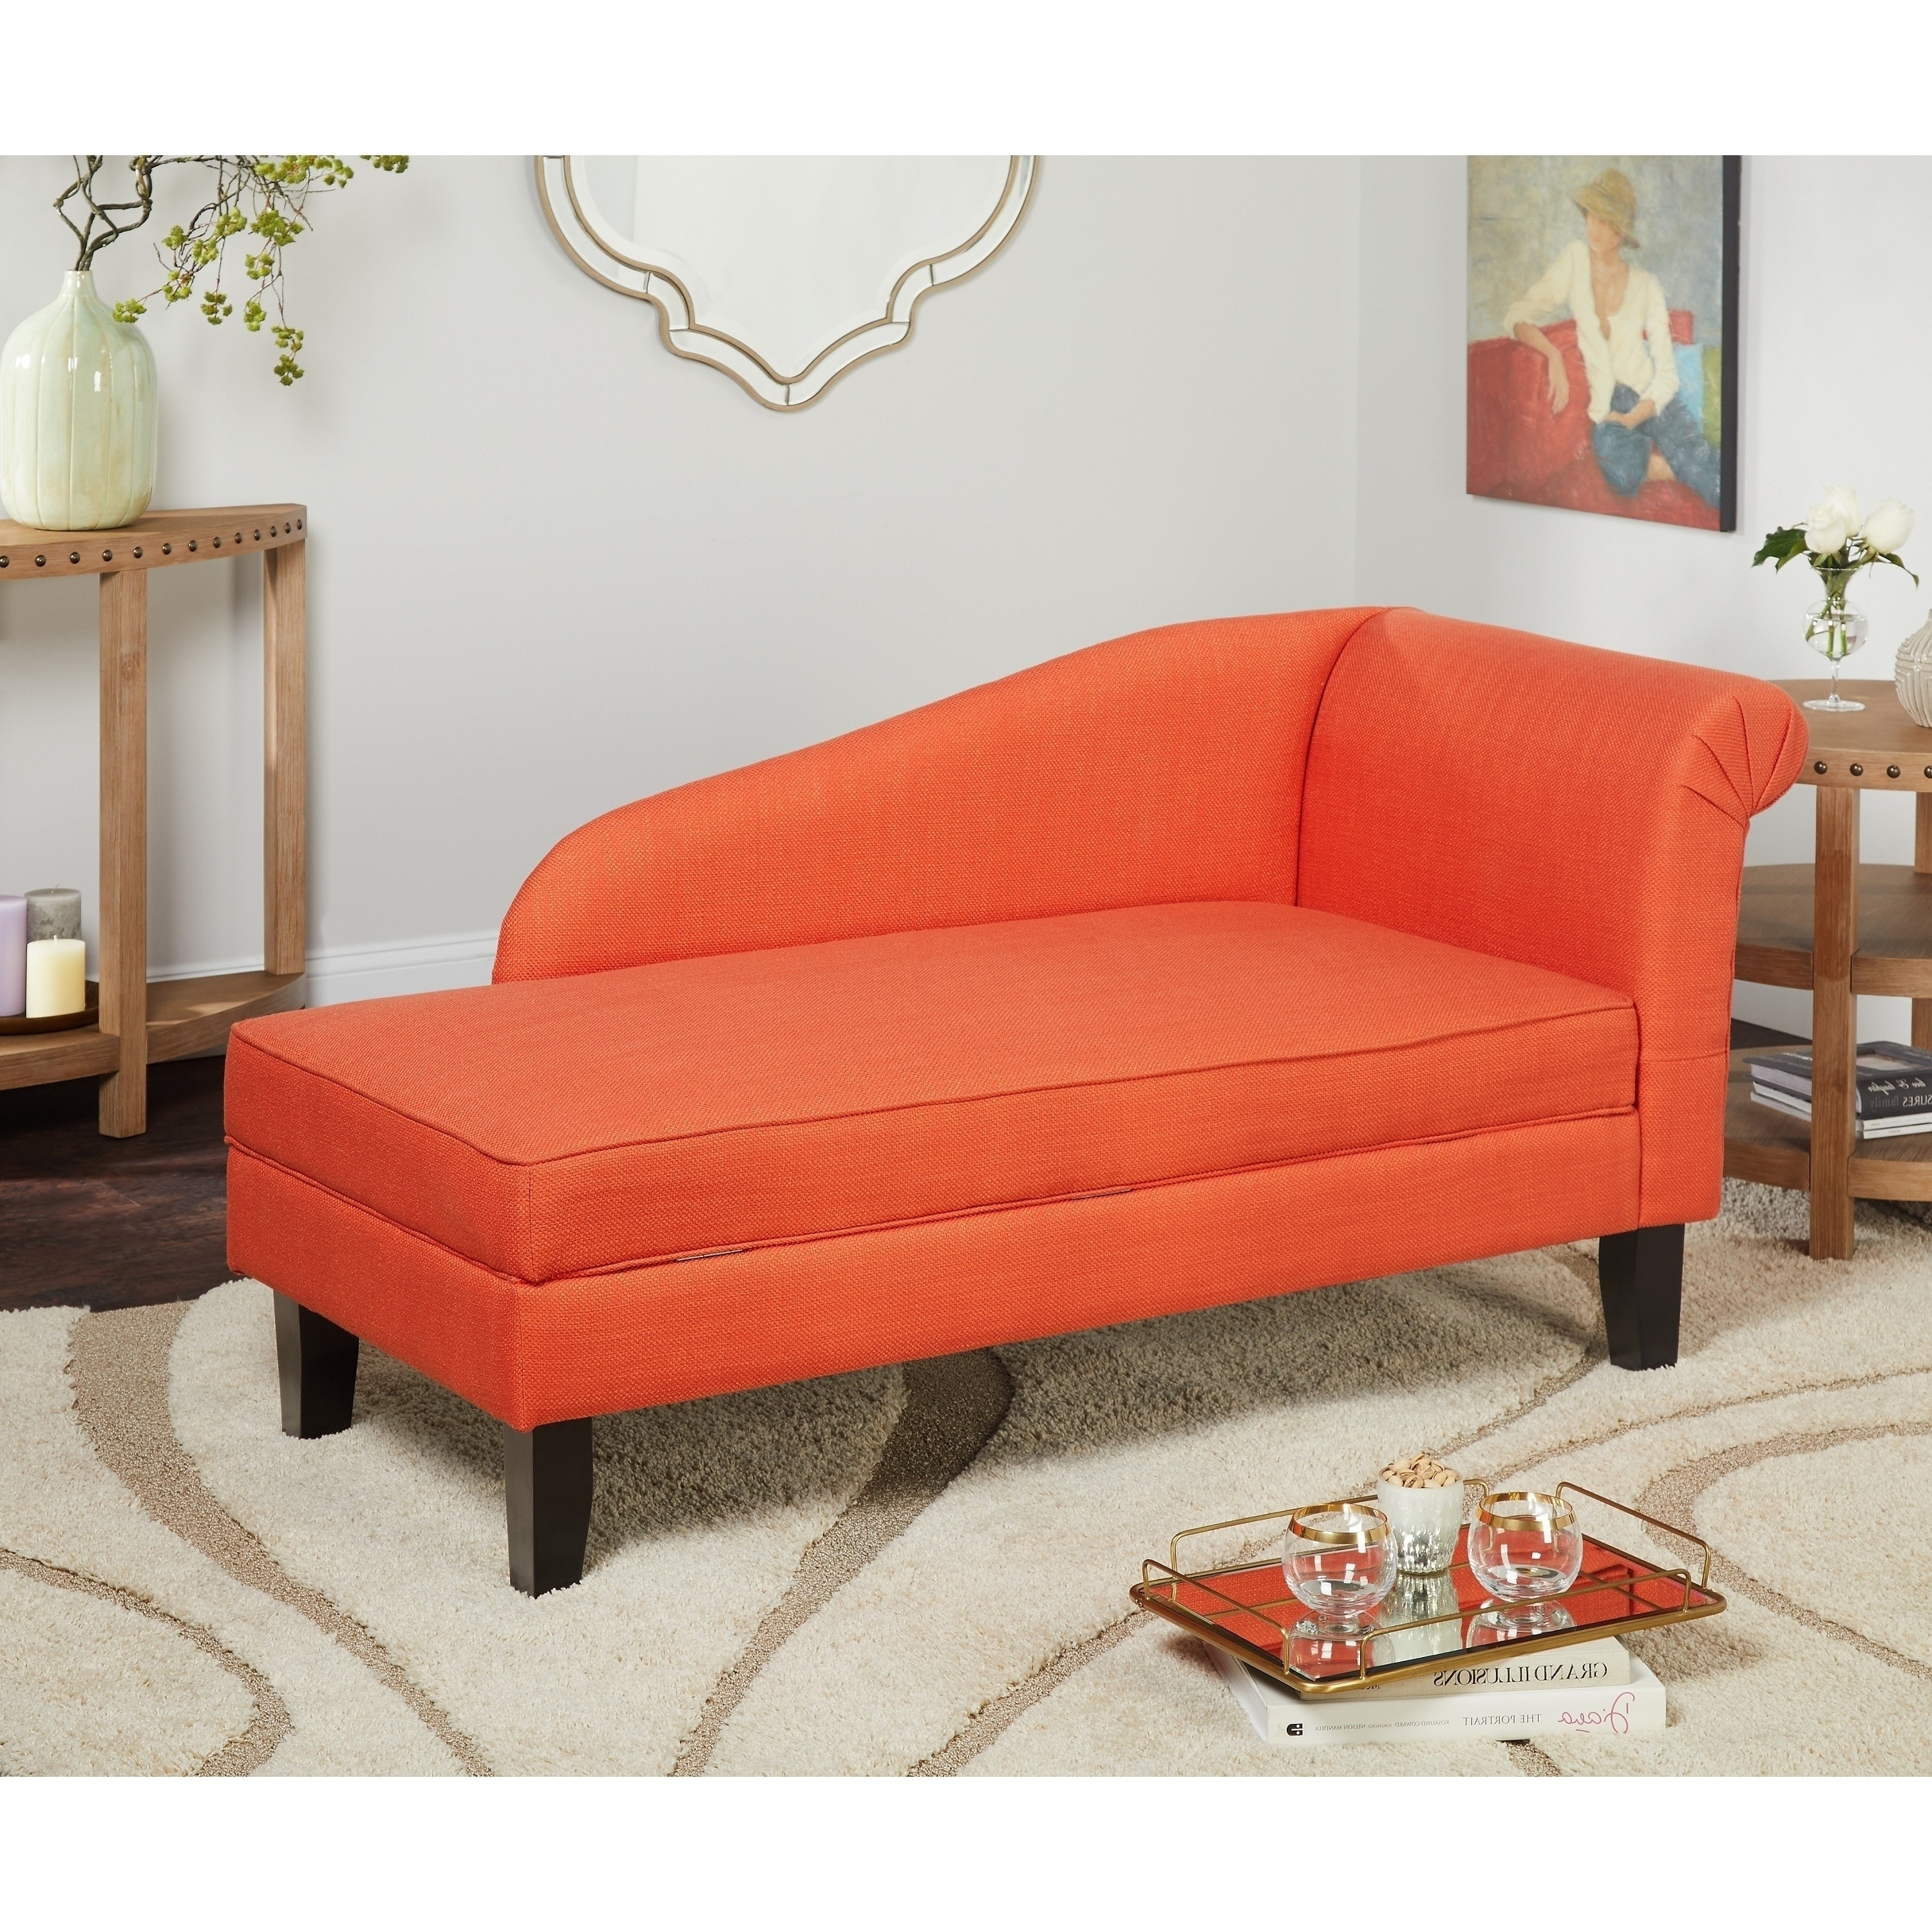 Orange Chaise Lounges Inside Newest Simple Living Chaise Lounge With Storage Compartment – Free (View 6 of 15)